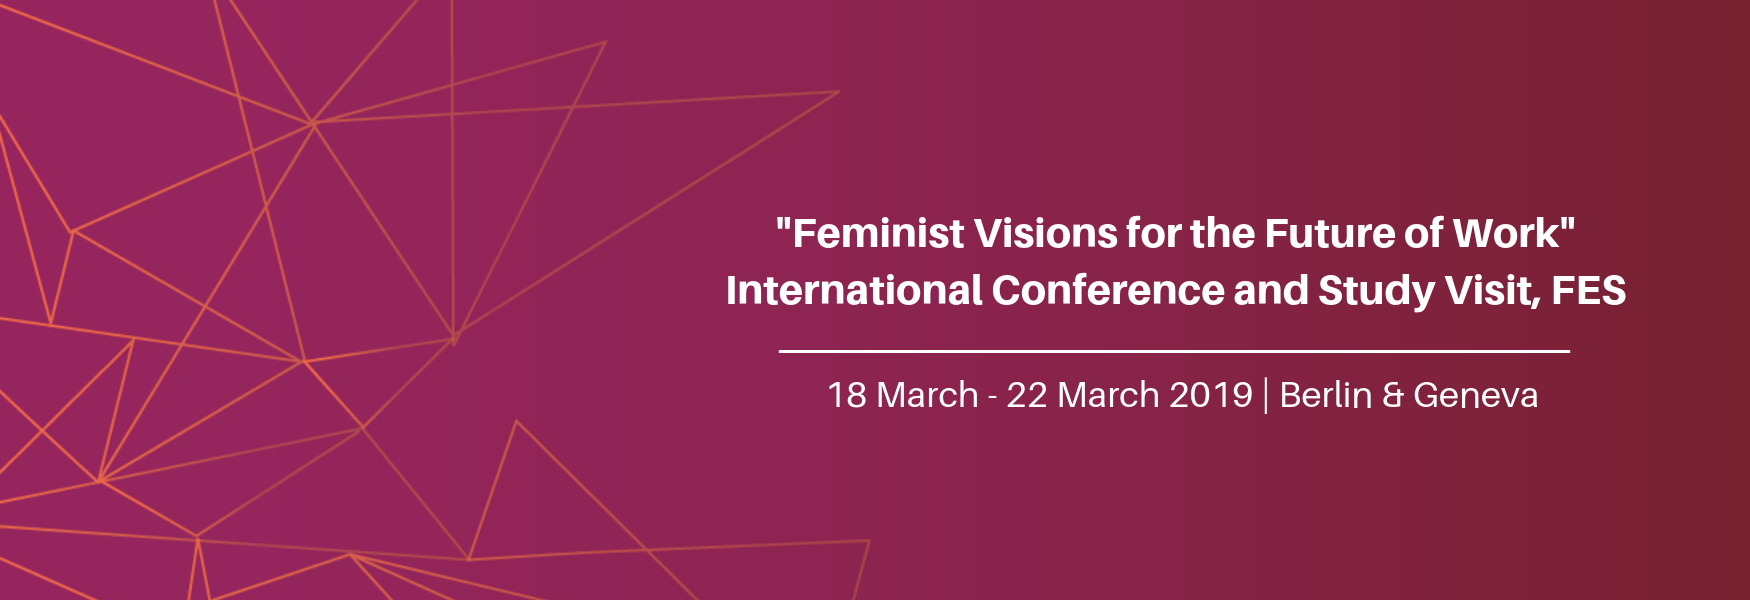 """Feminist Visions for the Future of Work"" International Conference and Study Visit"